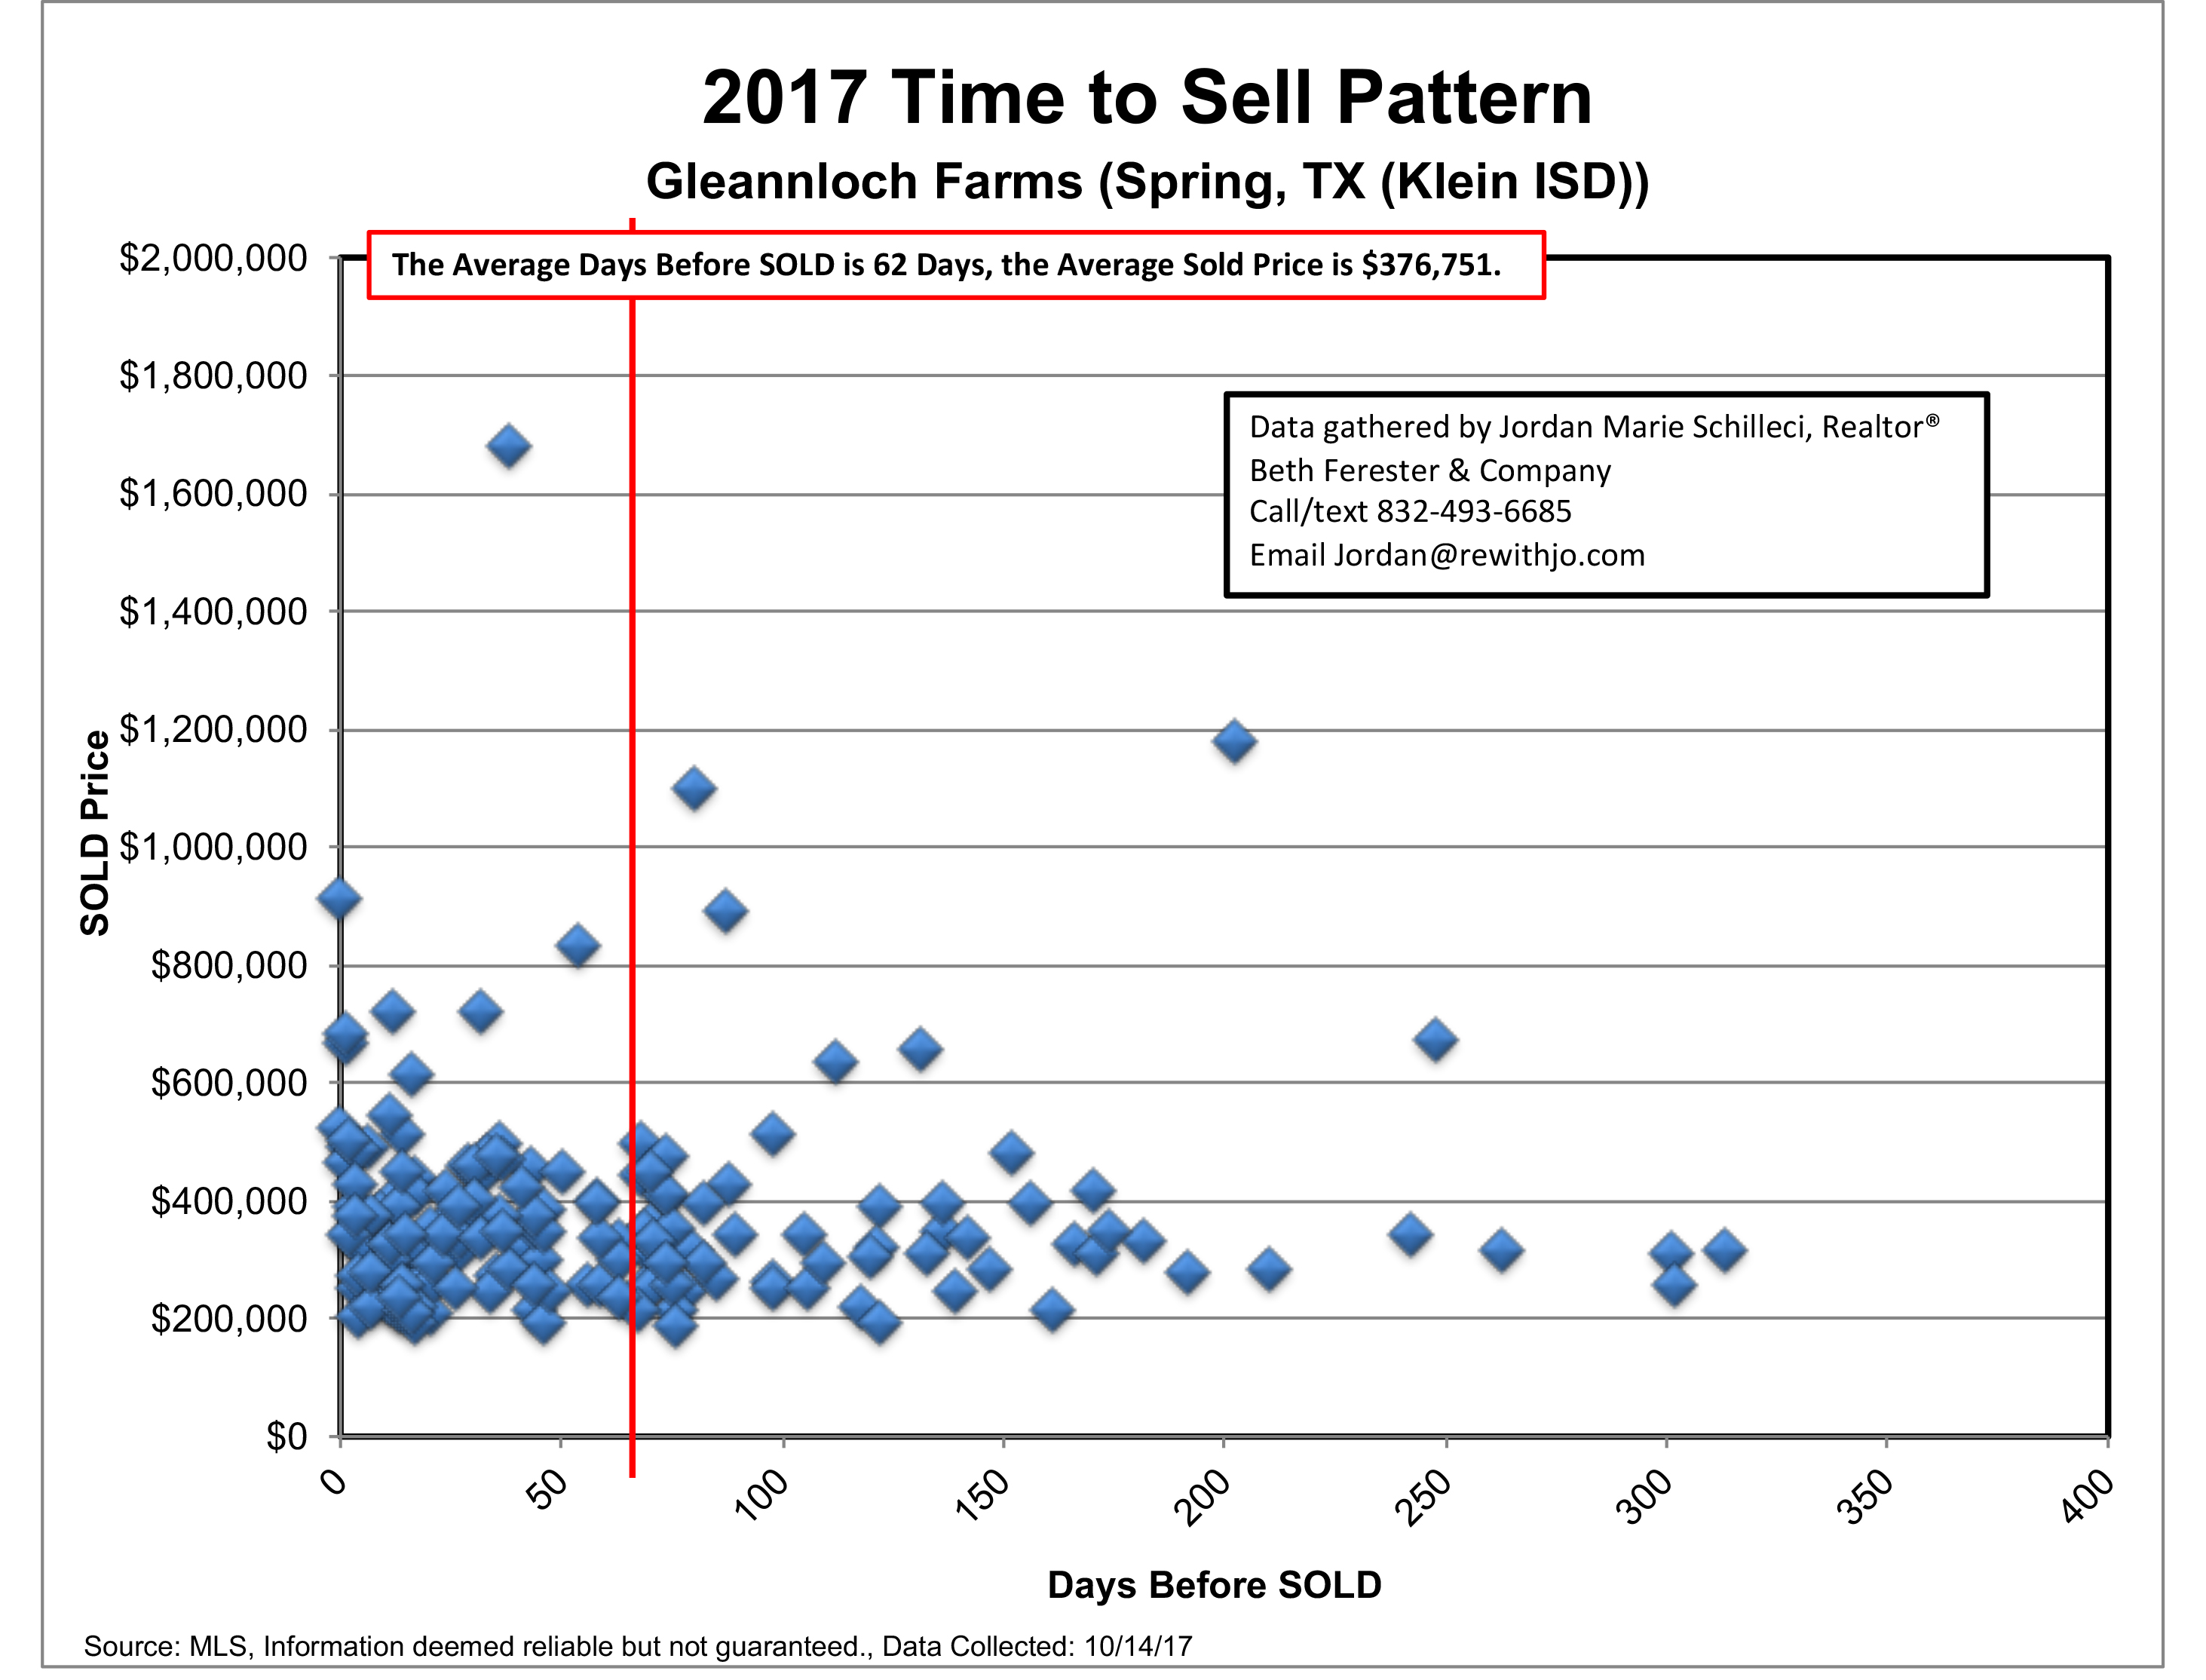 2017 time to sell gleannloch farms market update 2017